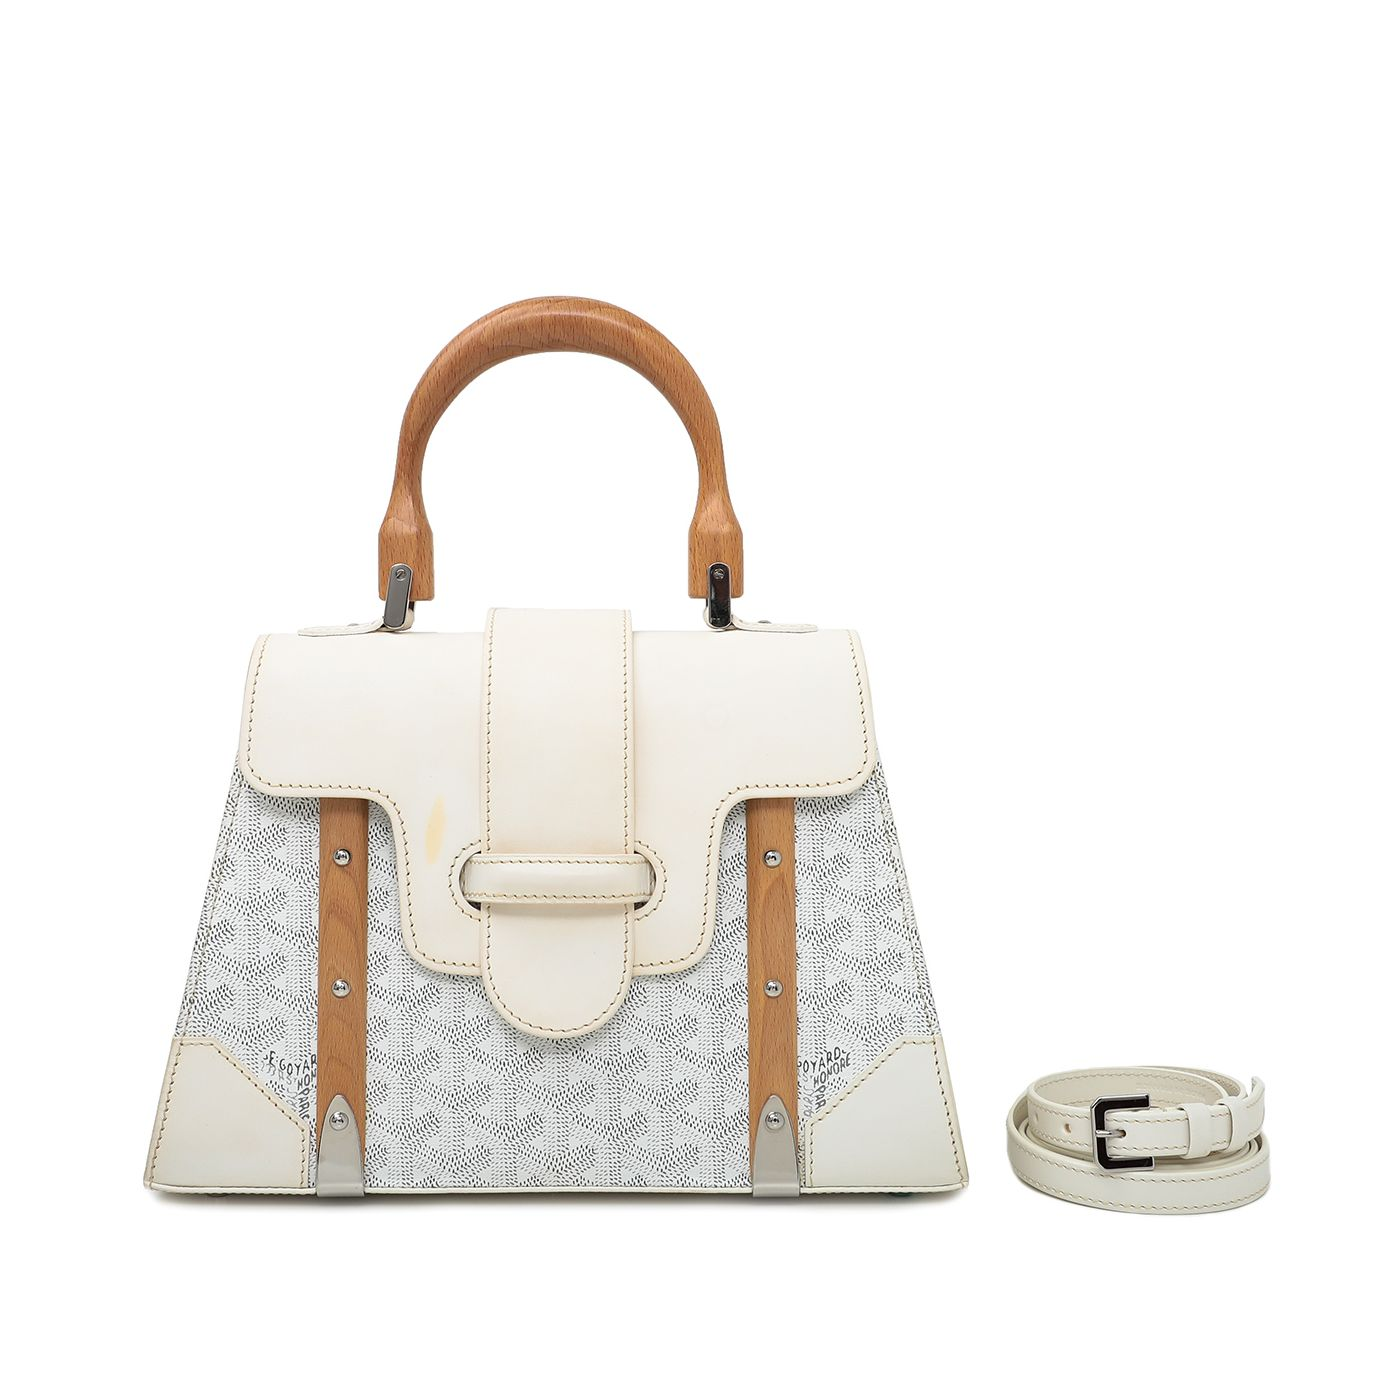 Goyard White Saigon PM Bag W/ Strap